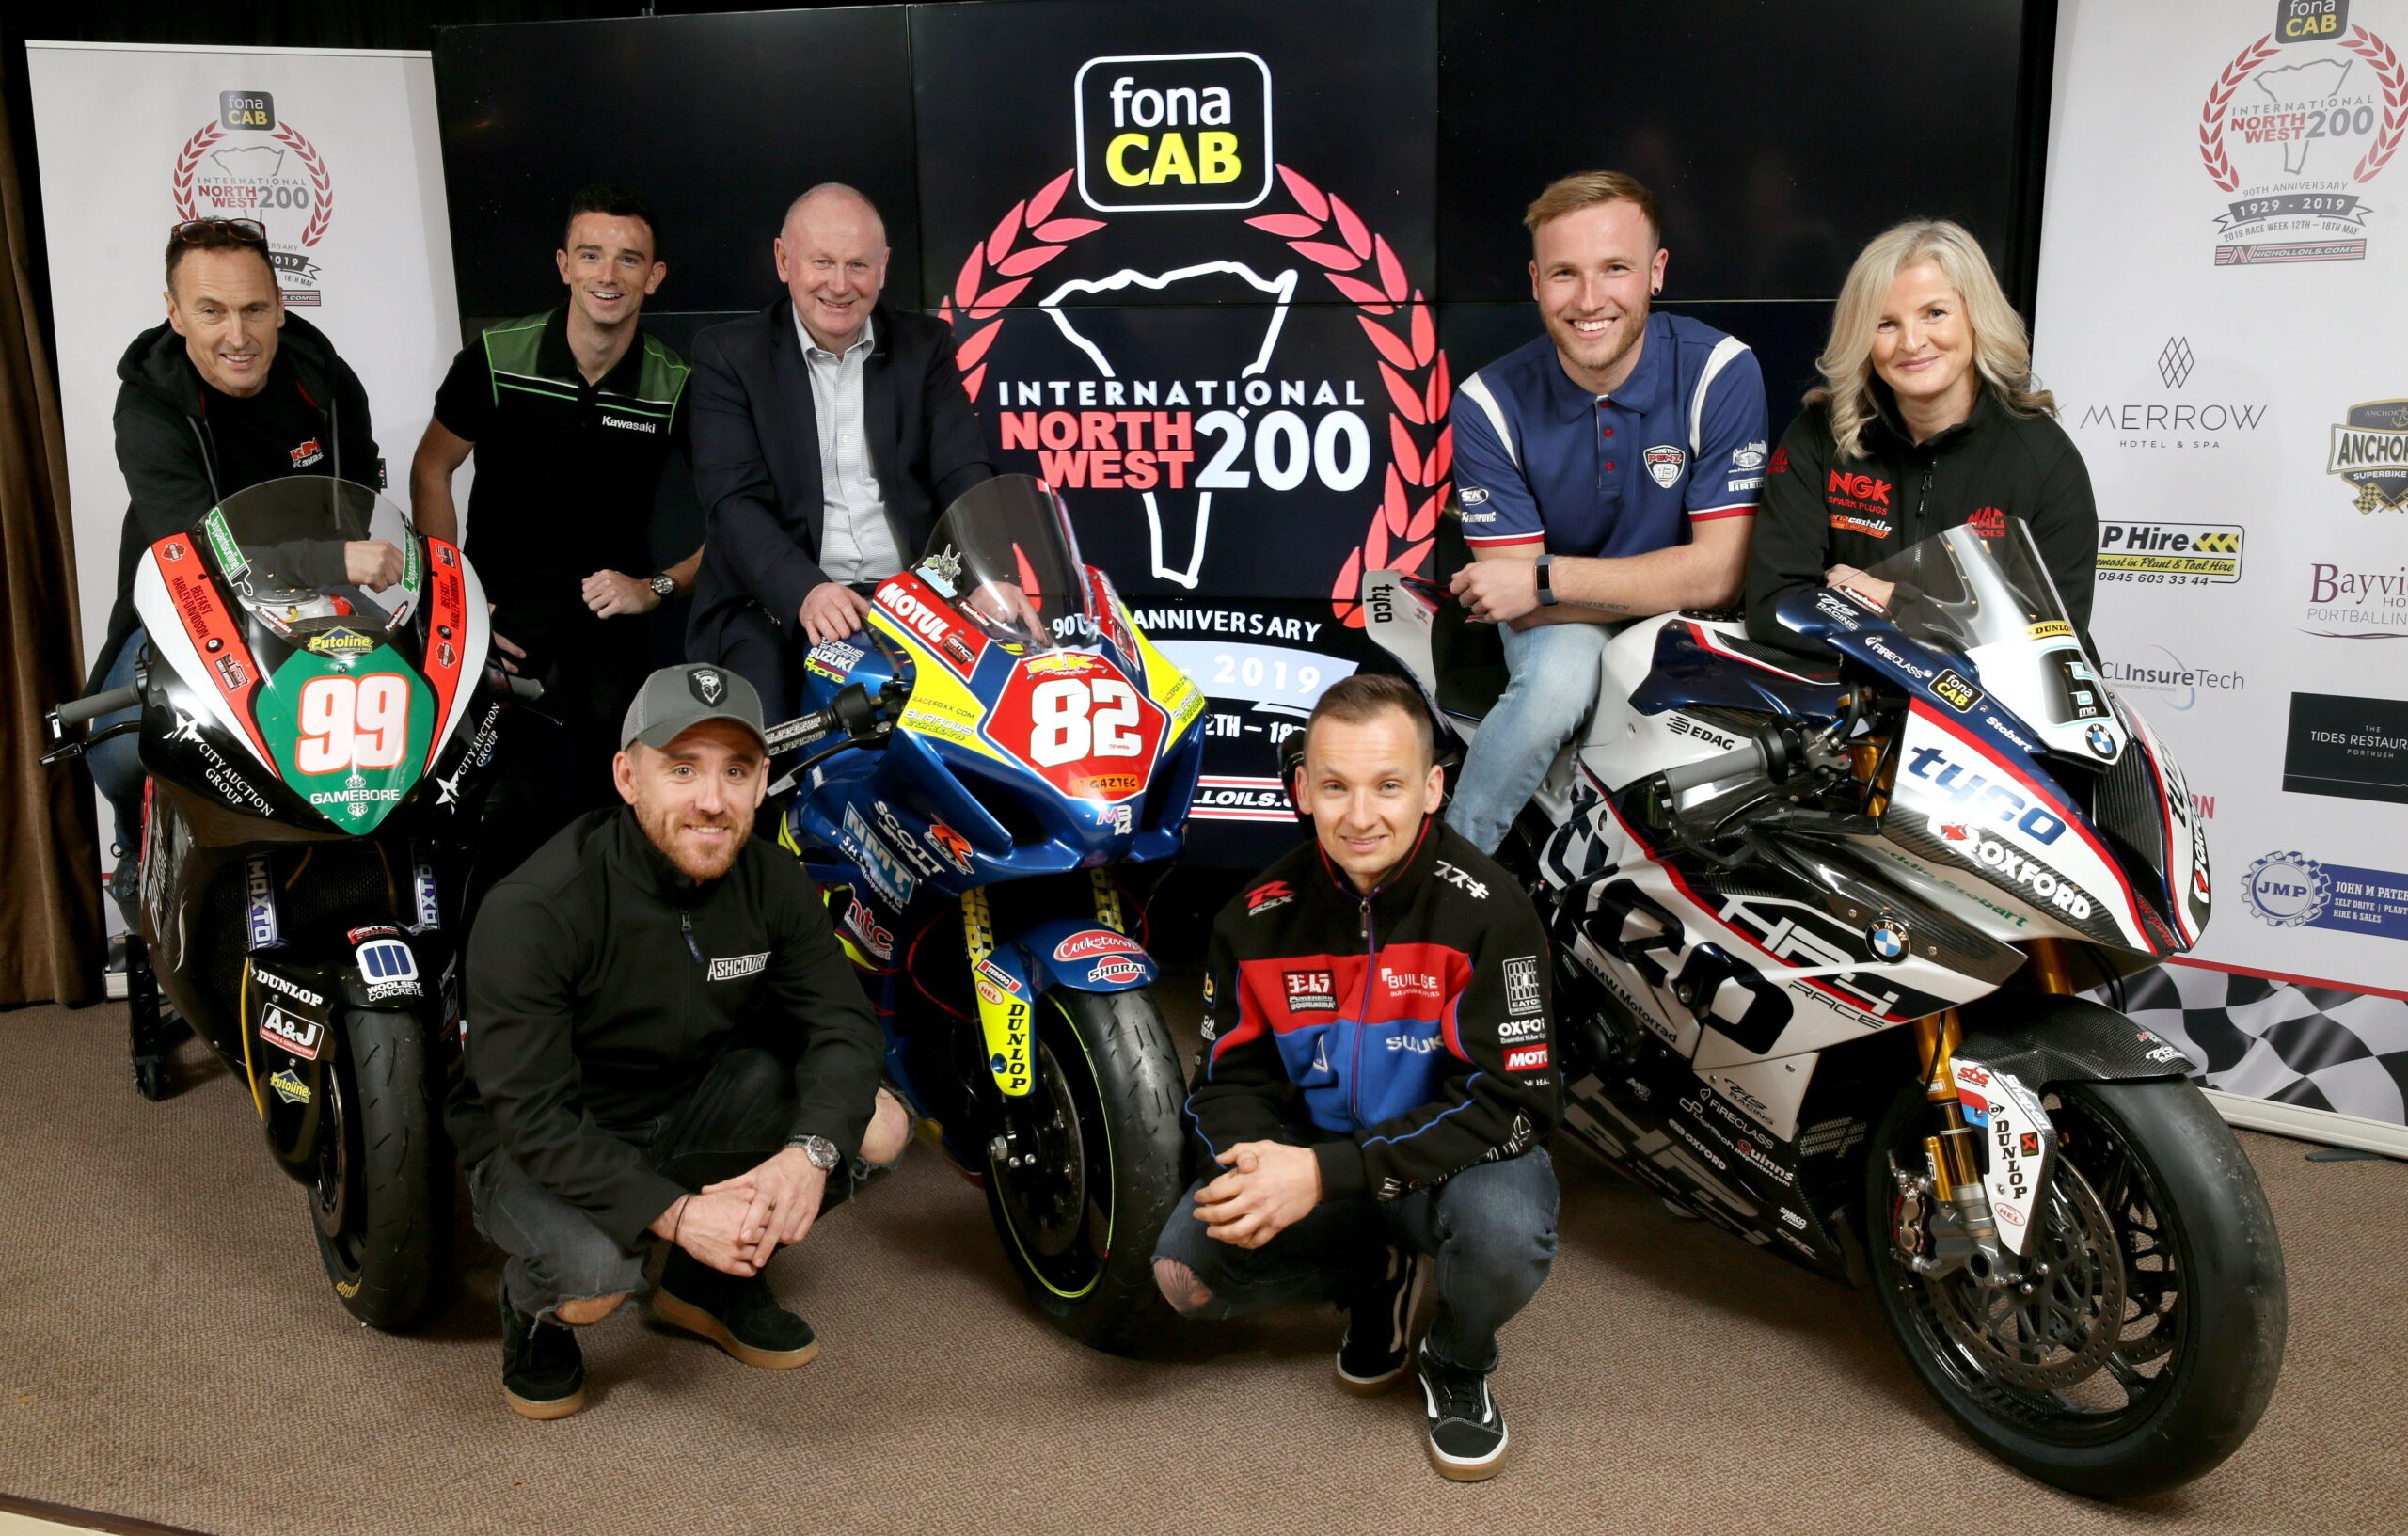 More High Profile North West 200 Based Announcements On The Horizon